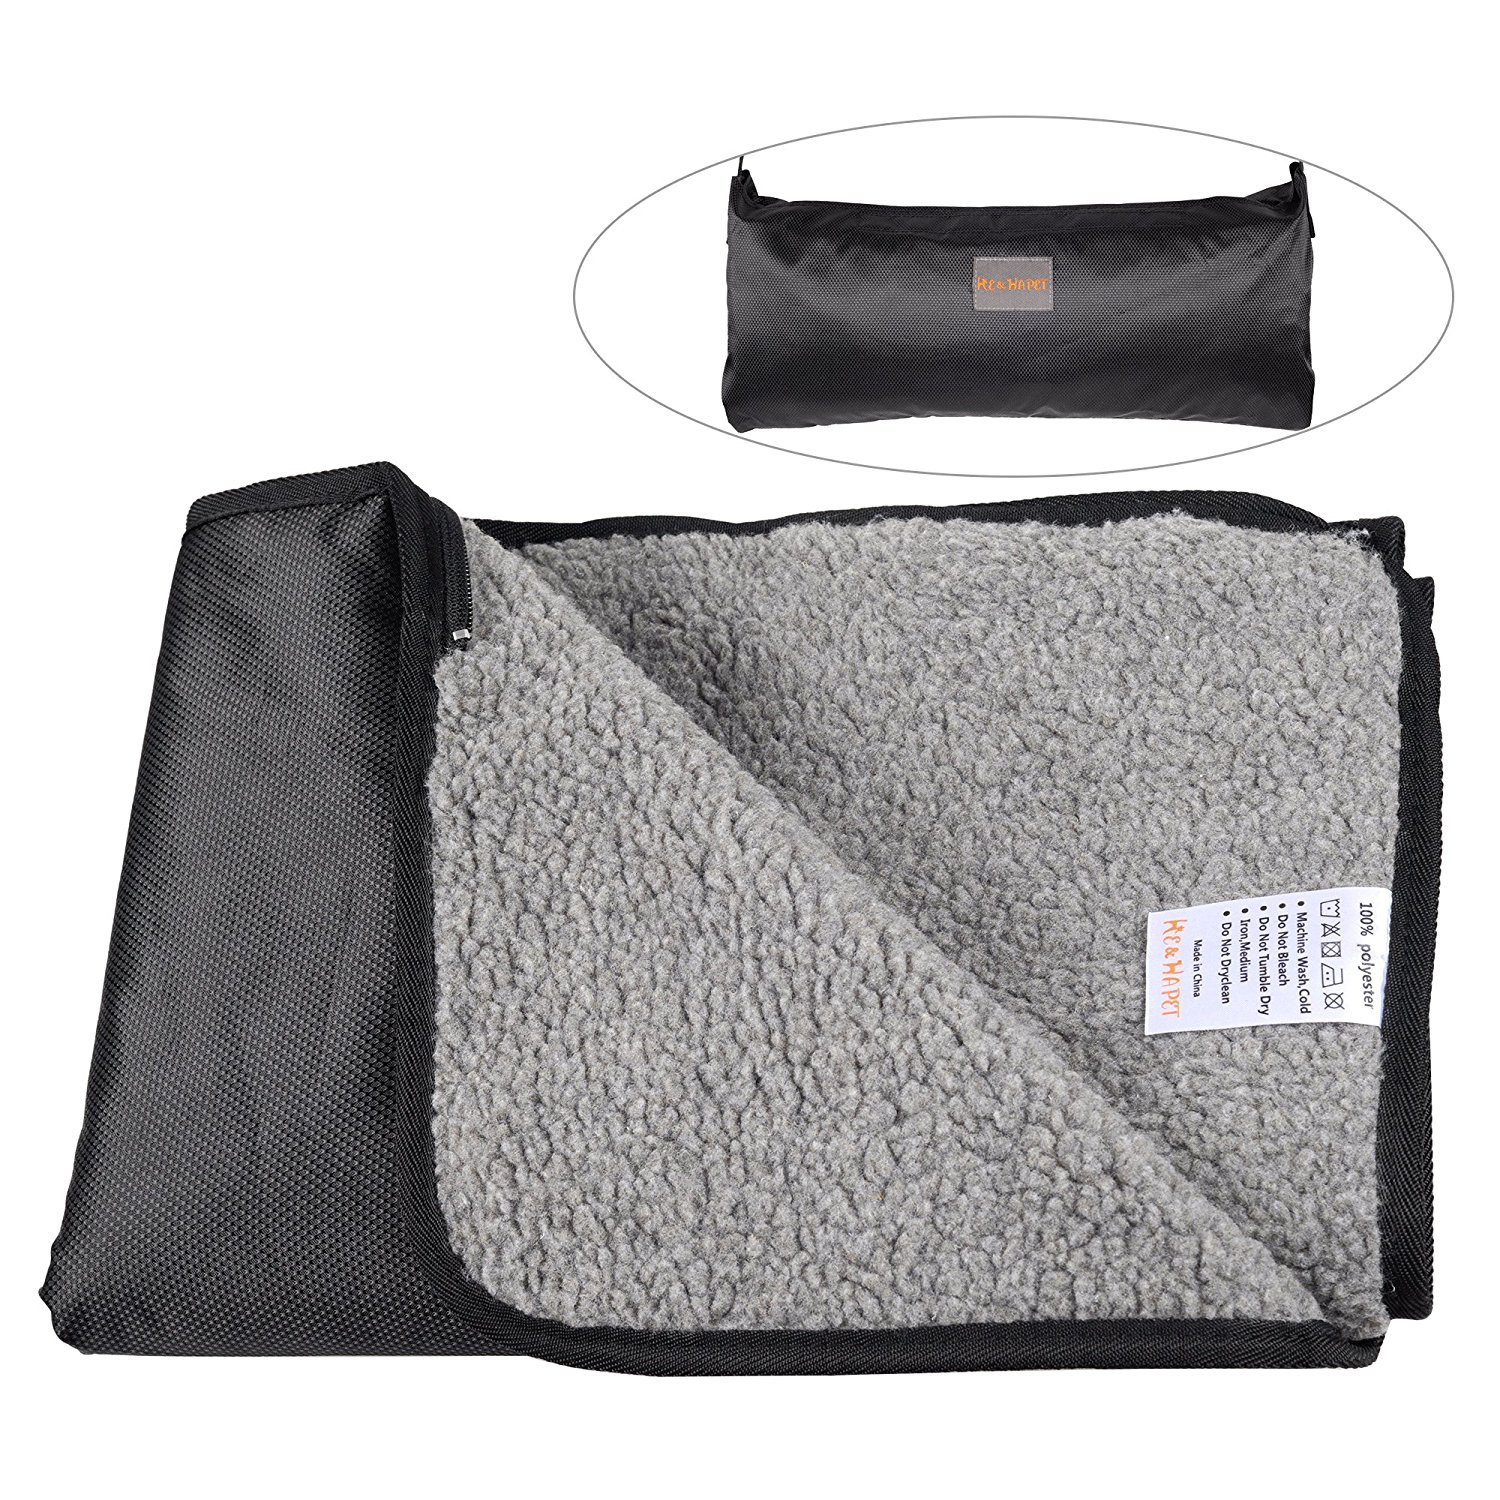 Waterproof Pet Blanket He&Ha Pet Dog Blankets Large Outdoor and Indoor for Dogs and Cats with Storage Bag